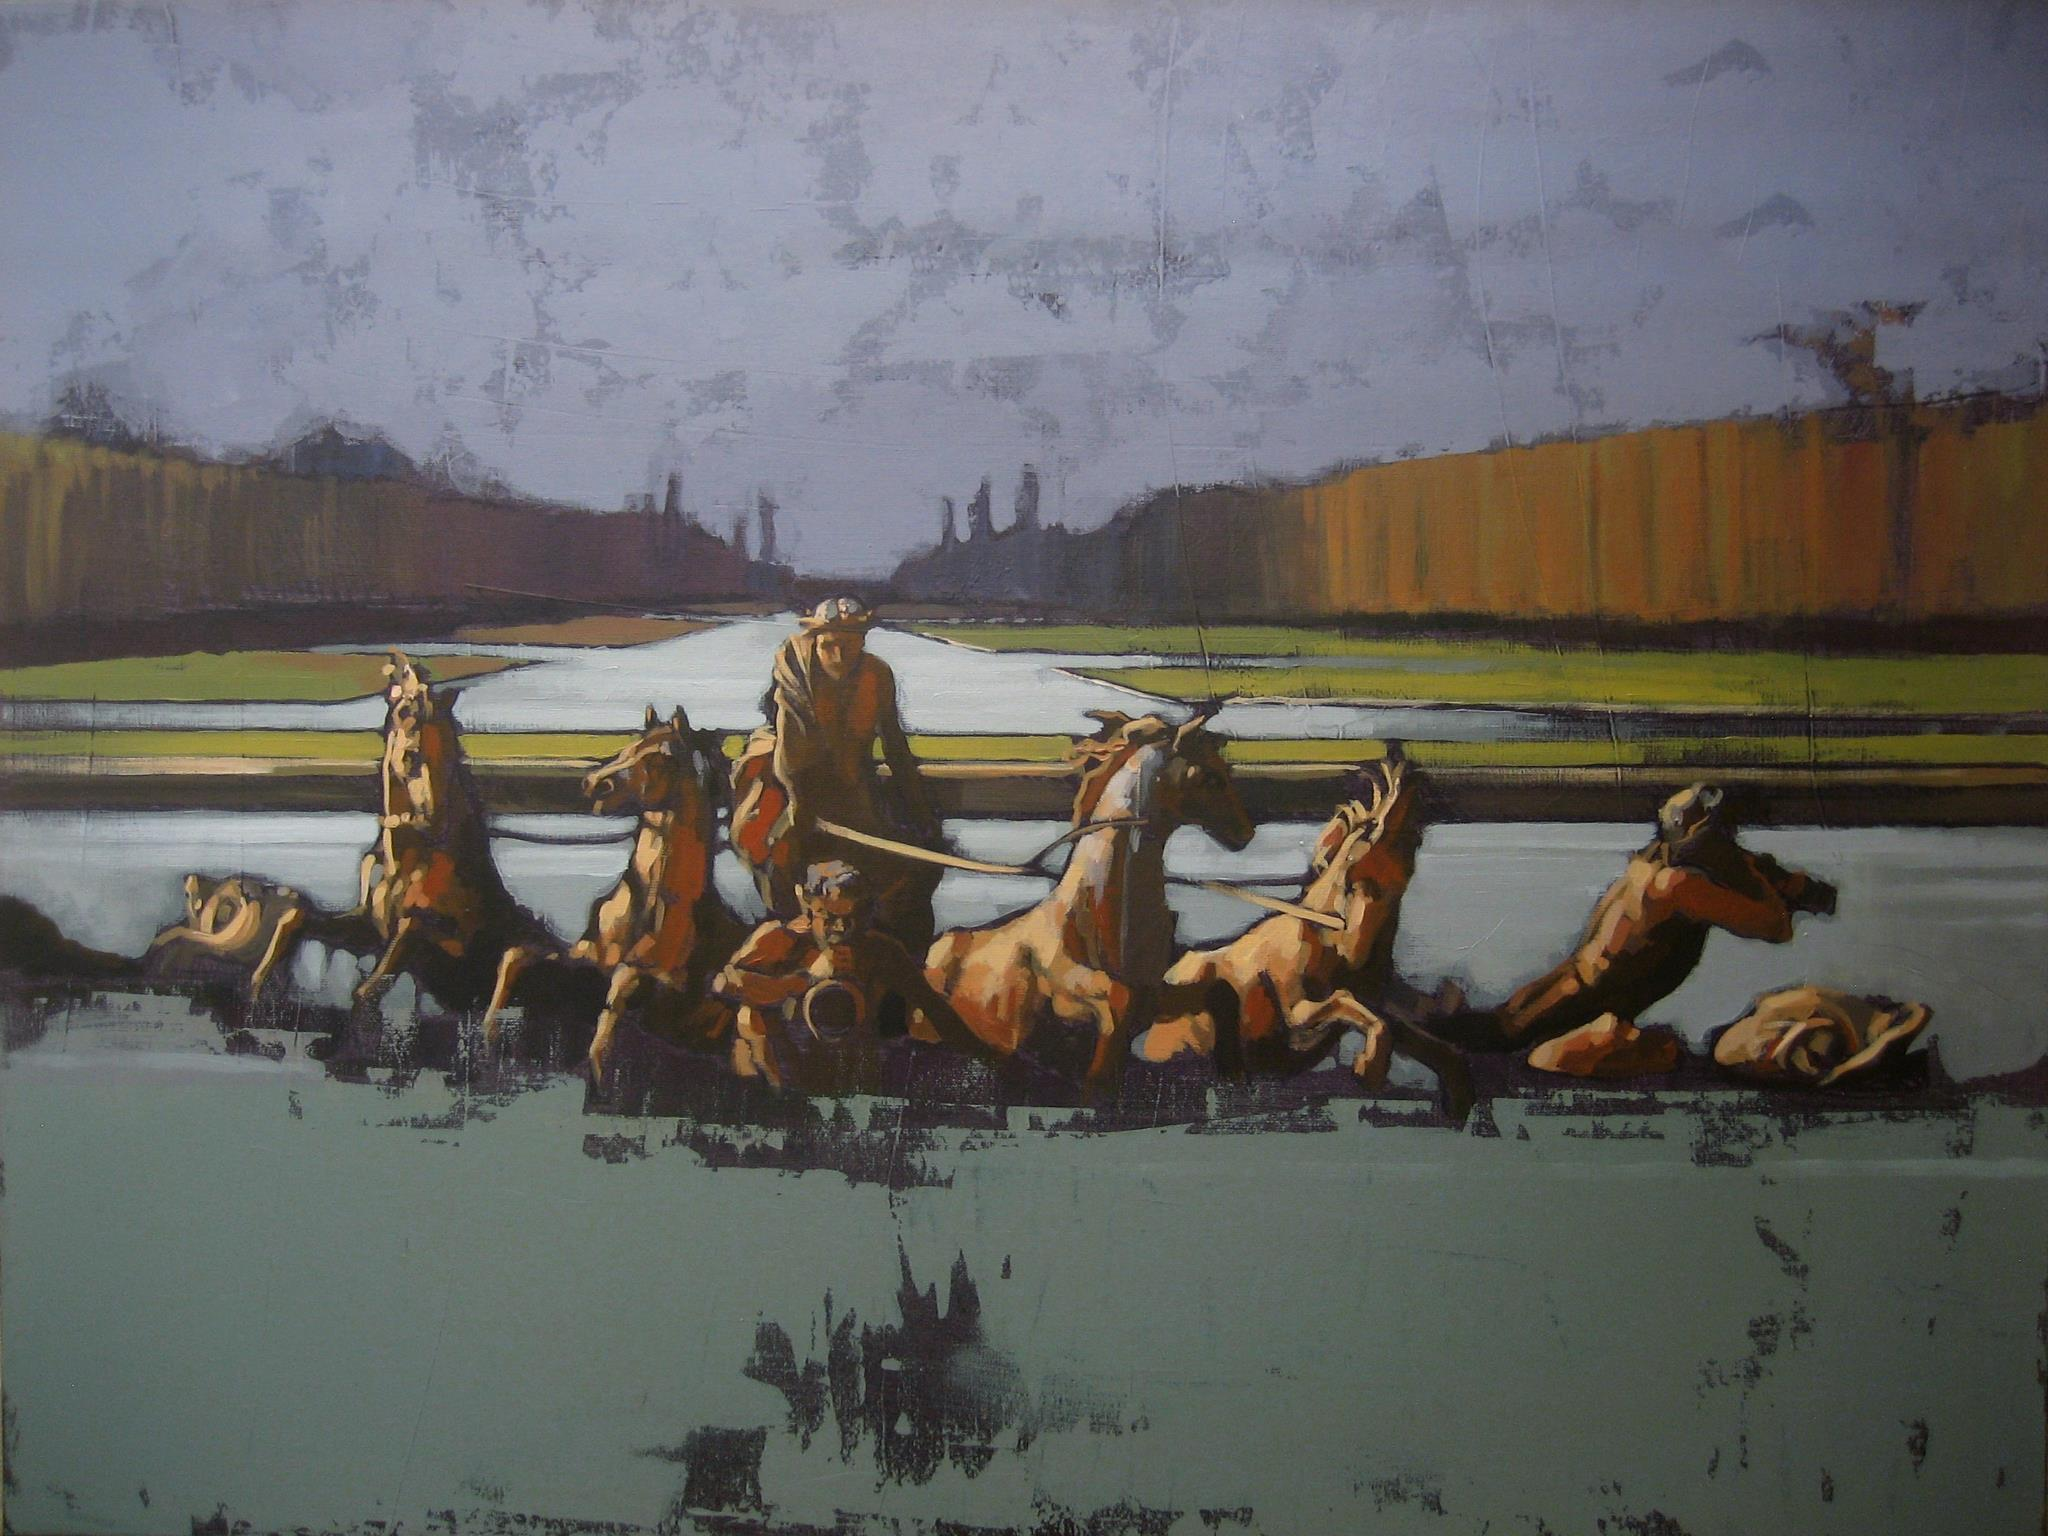 revolution 1 ( wild horses ) - Acrylic 89 x 116 march 2012